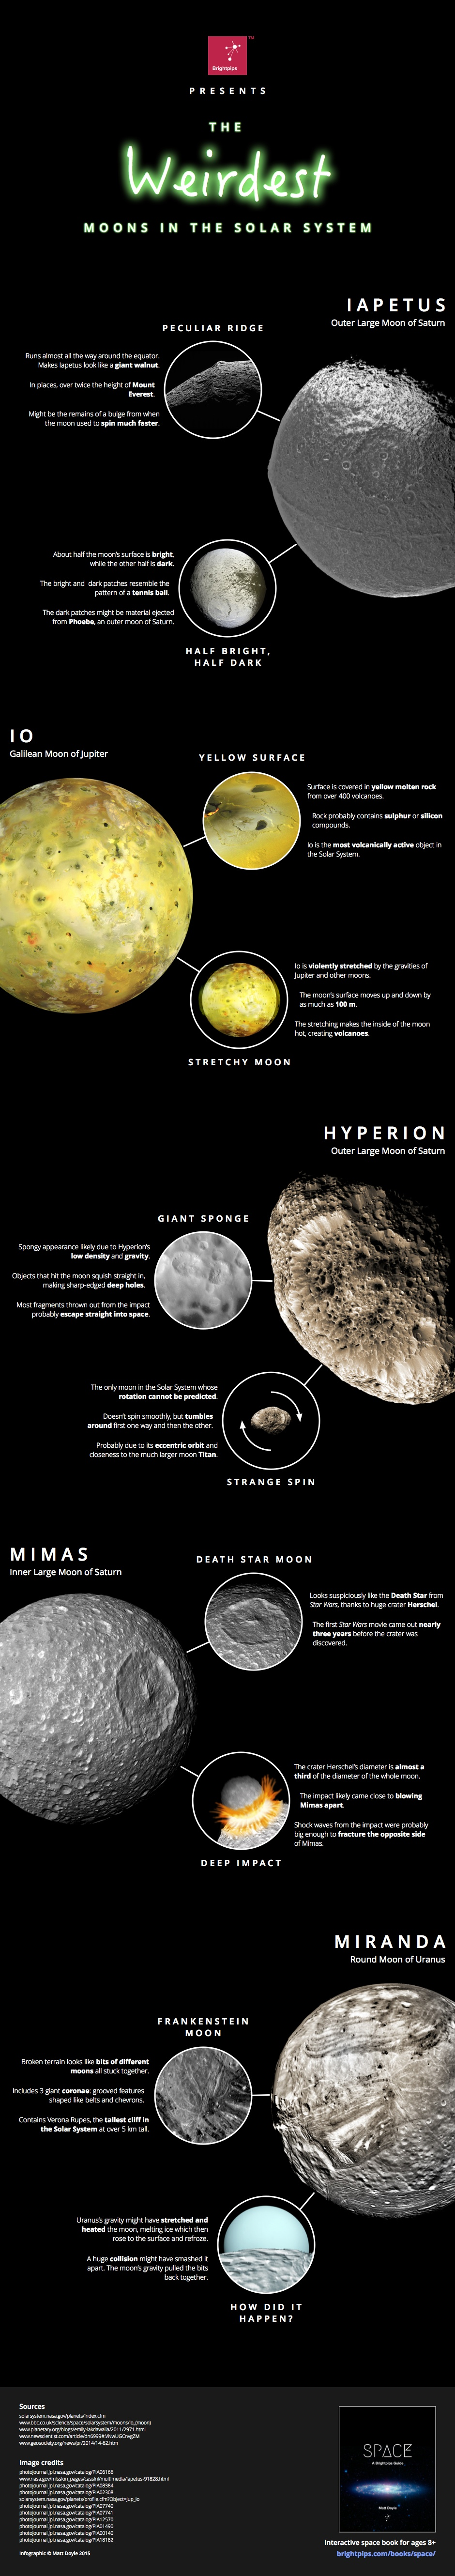 The Weirdest Moons in the Solar System (infographic)